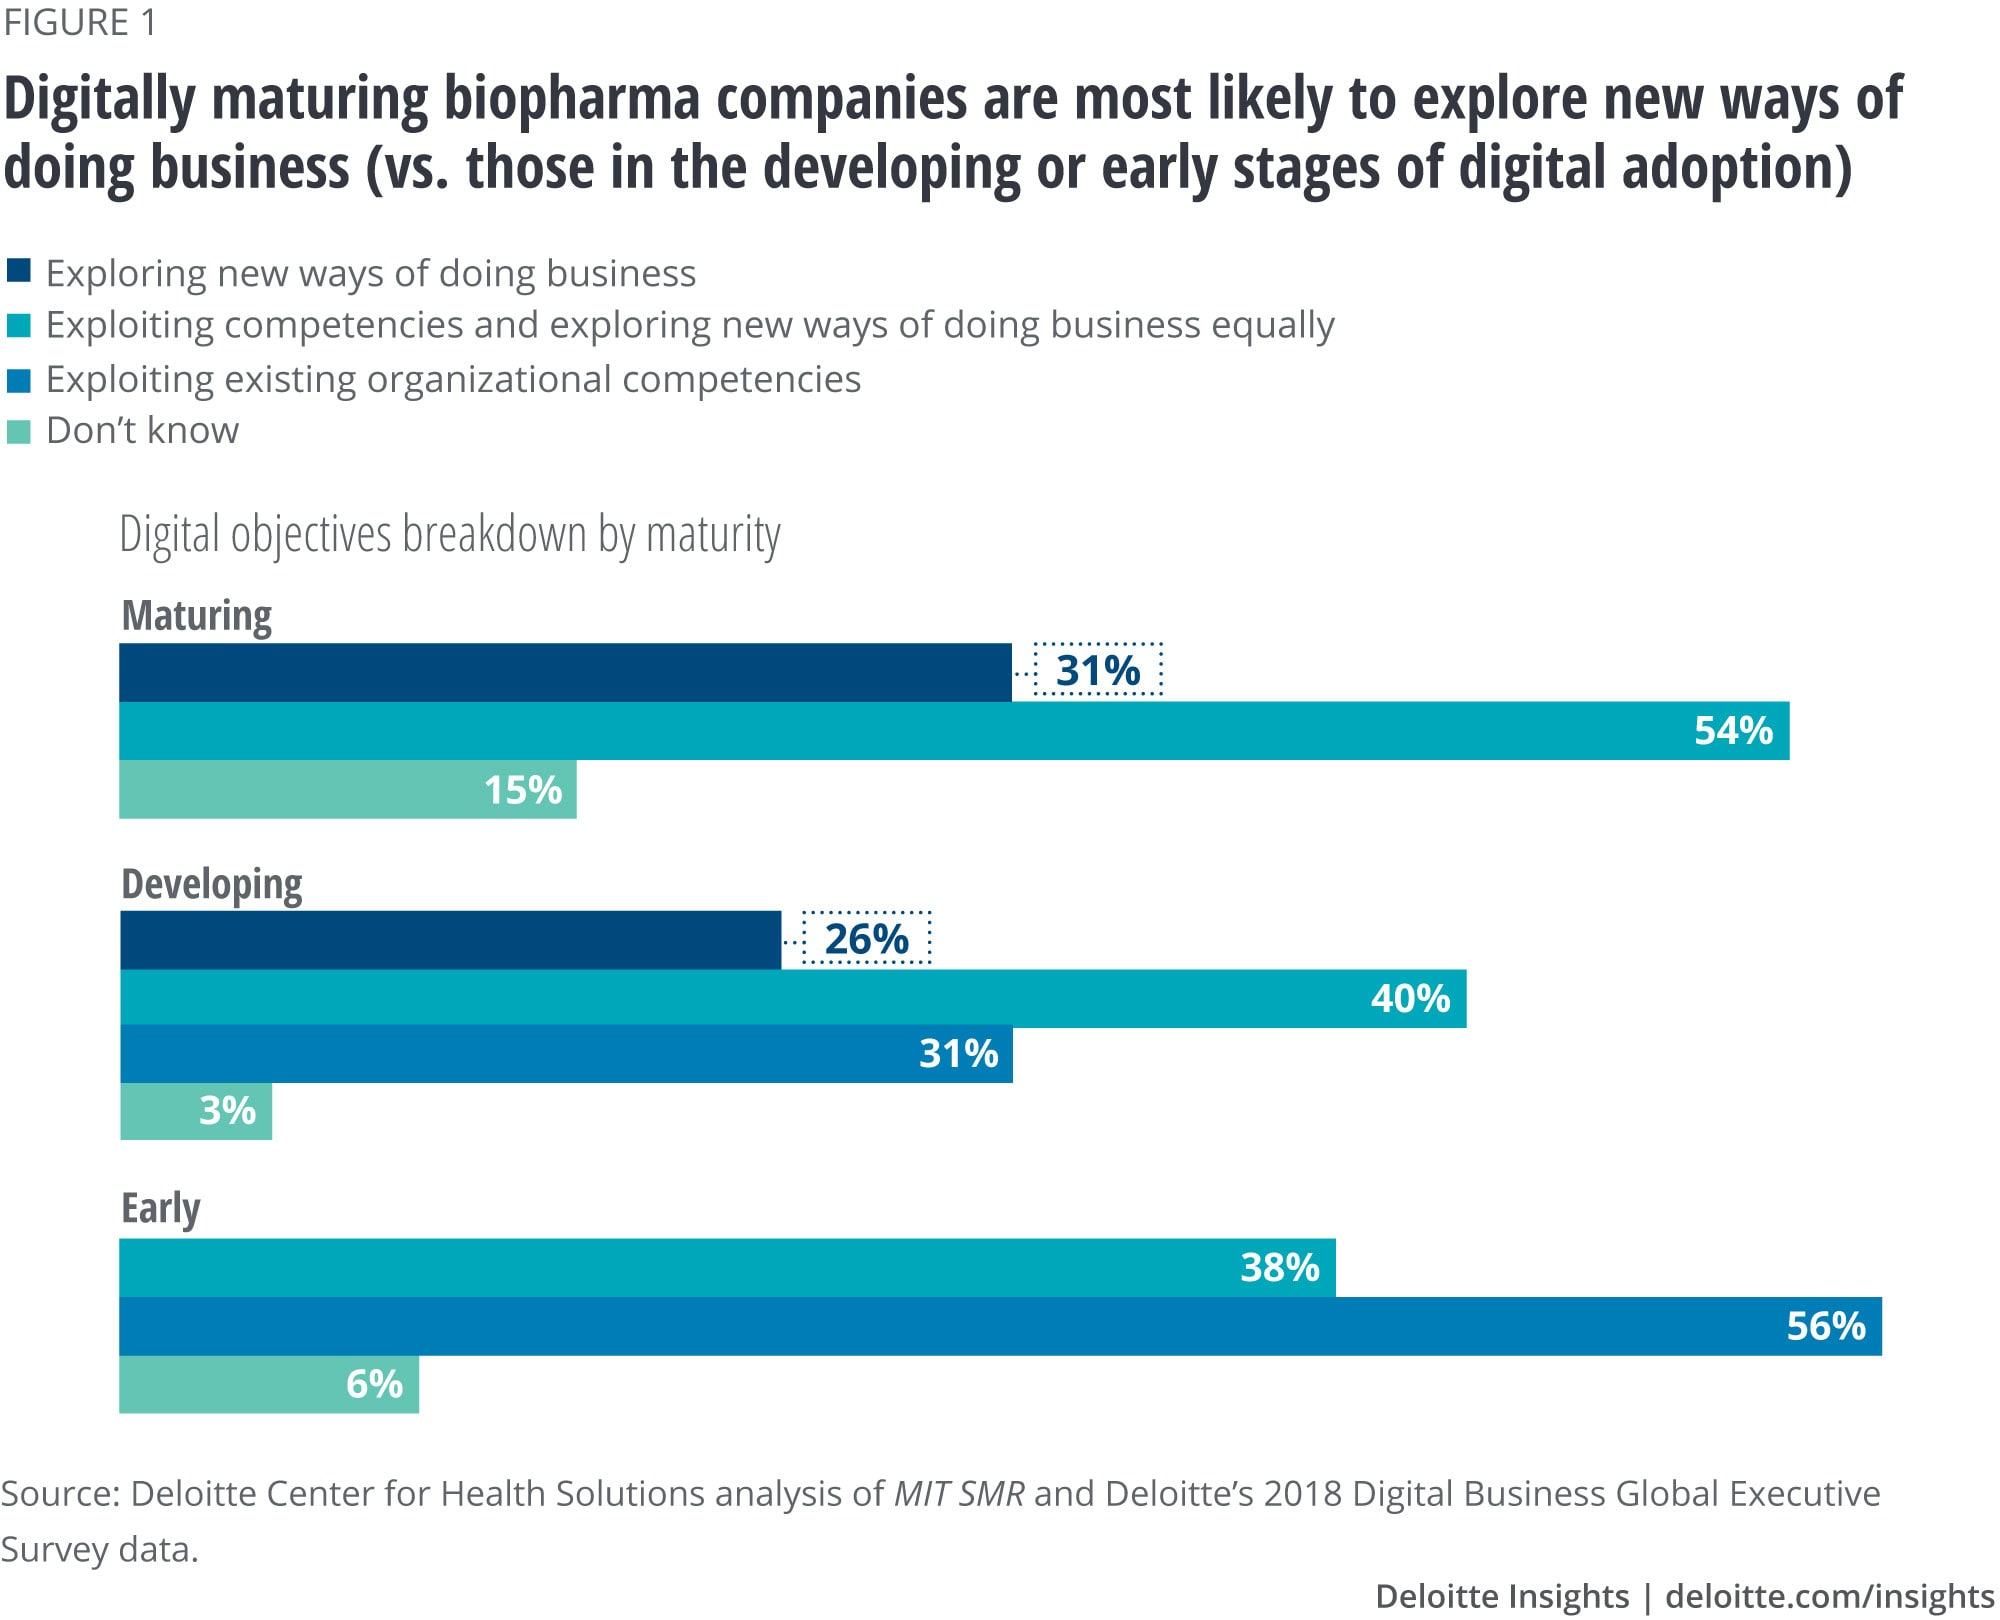 Digitally maturing biopharma companies are most likely to explore new ways of doing business (vs. those in the developing or early stages of digital adoption)